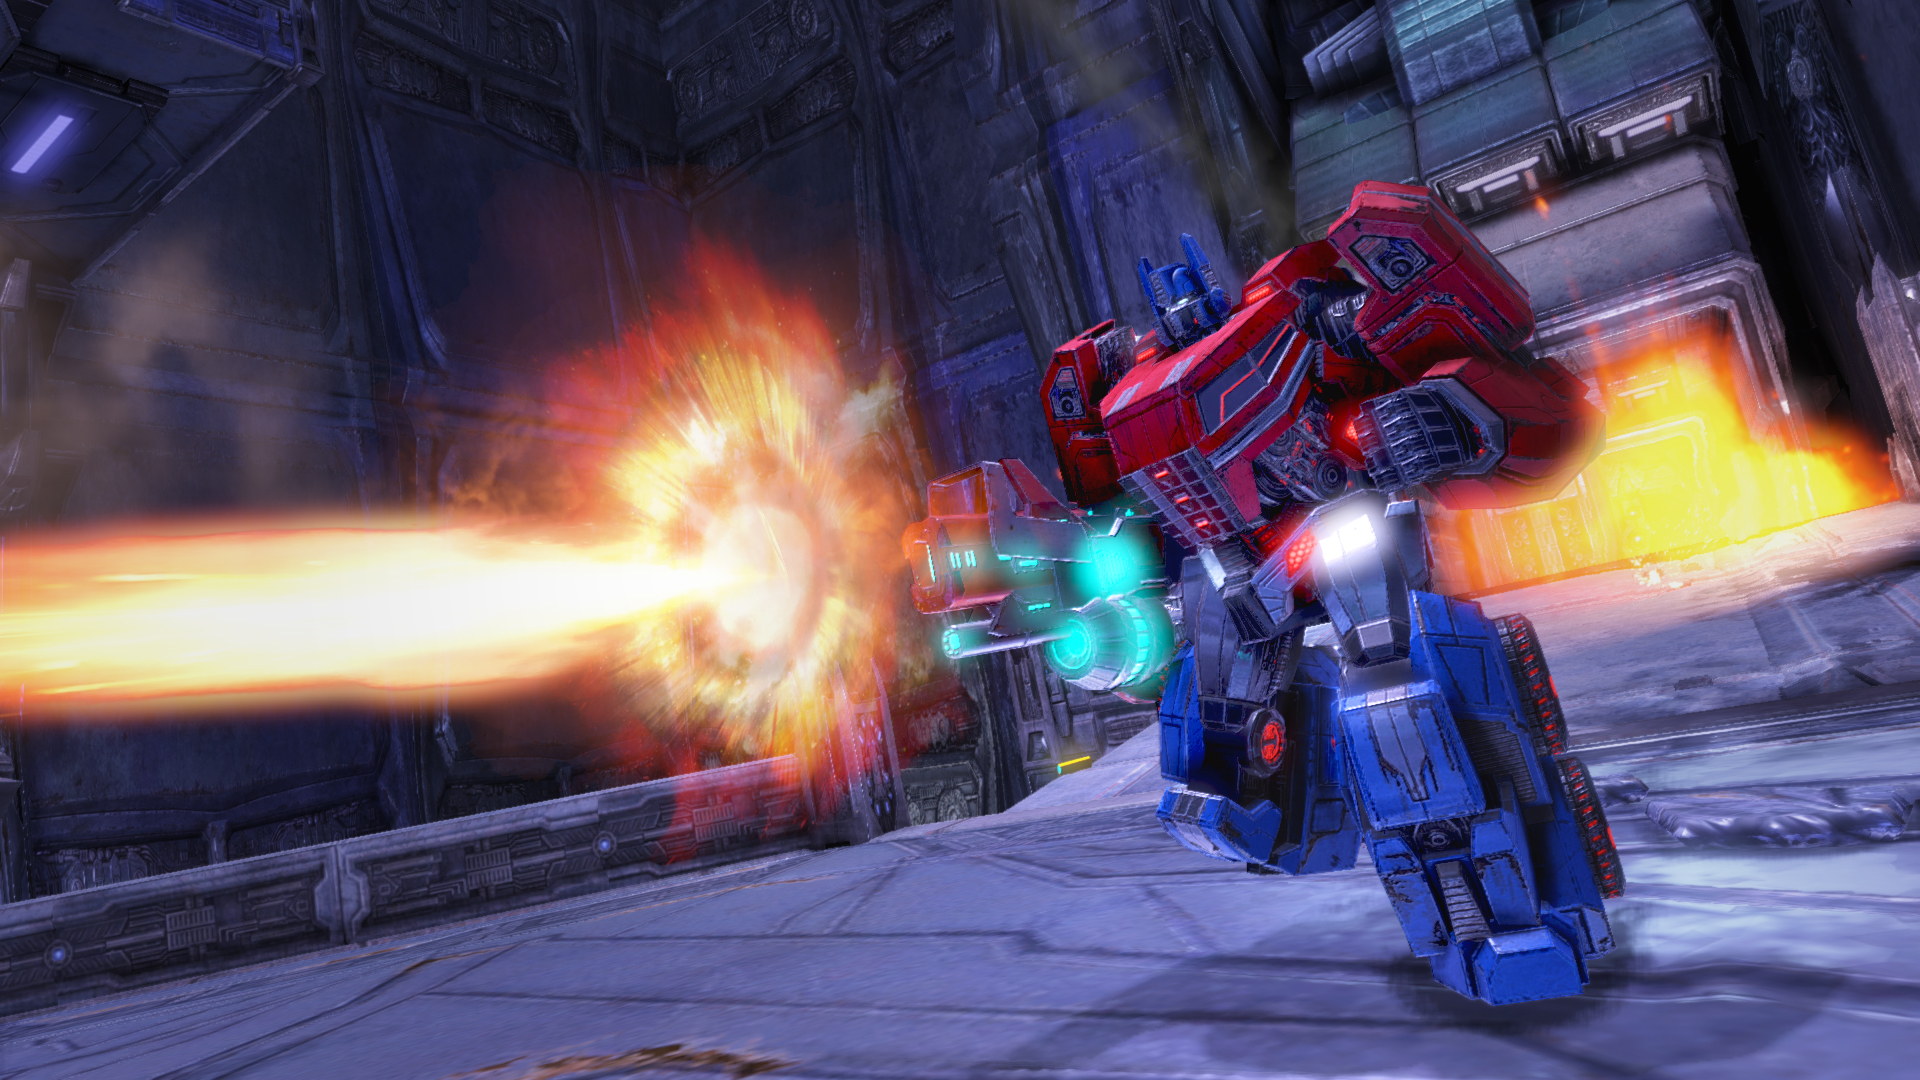 Transformers: Rise Of The Dark Spark confirmed as movie tie-in and Fall Of Cybertron sequel